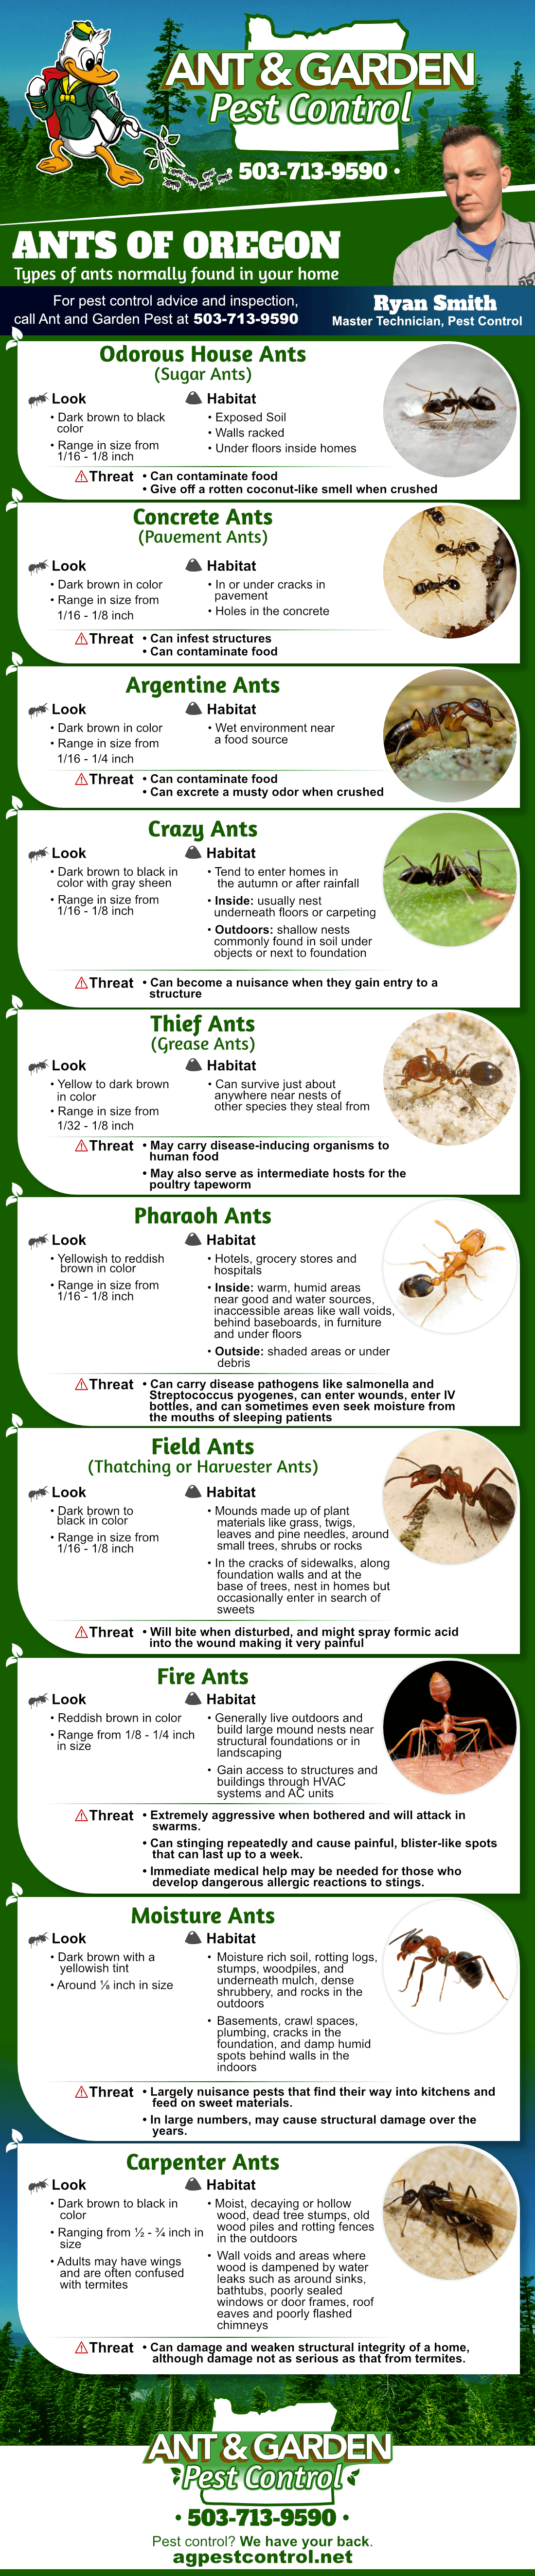 types of ants in Oregon